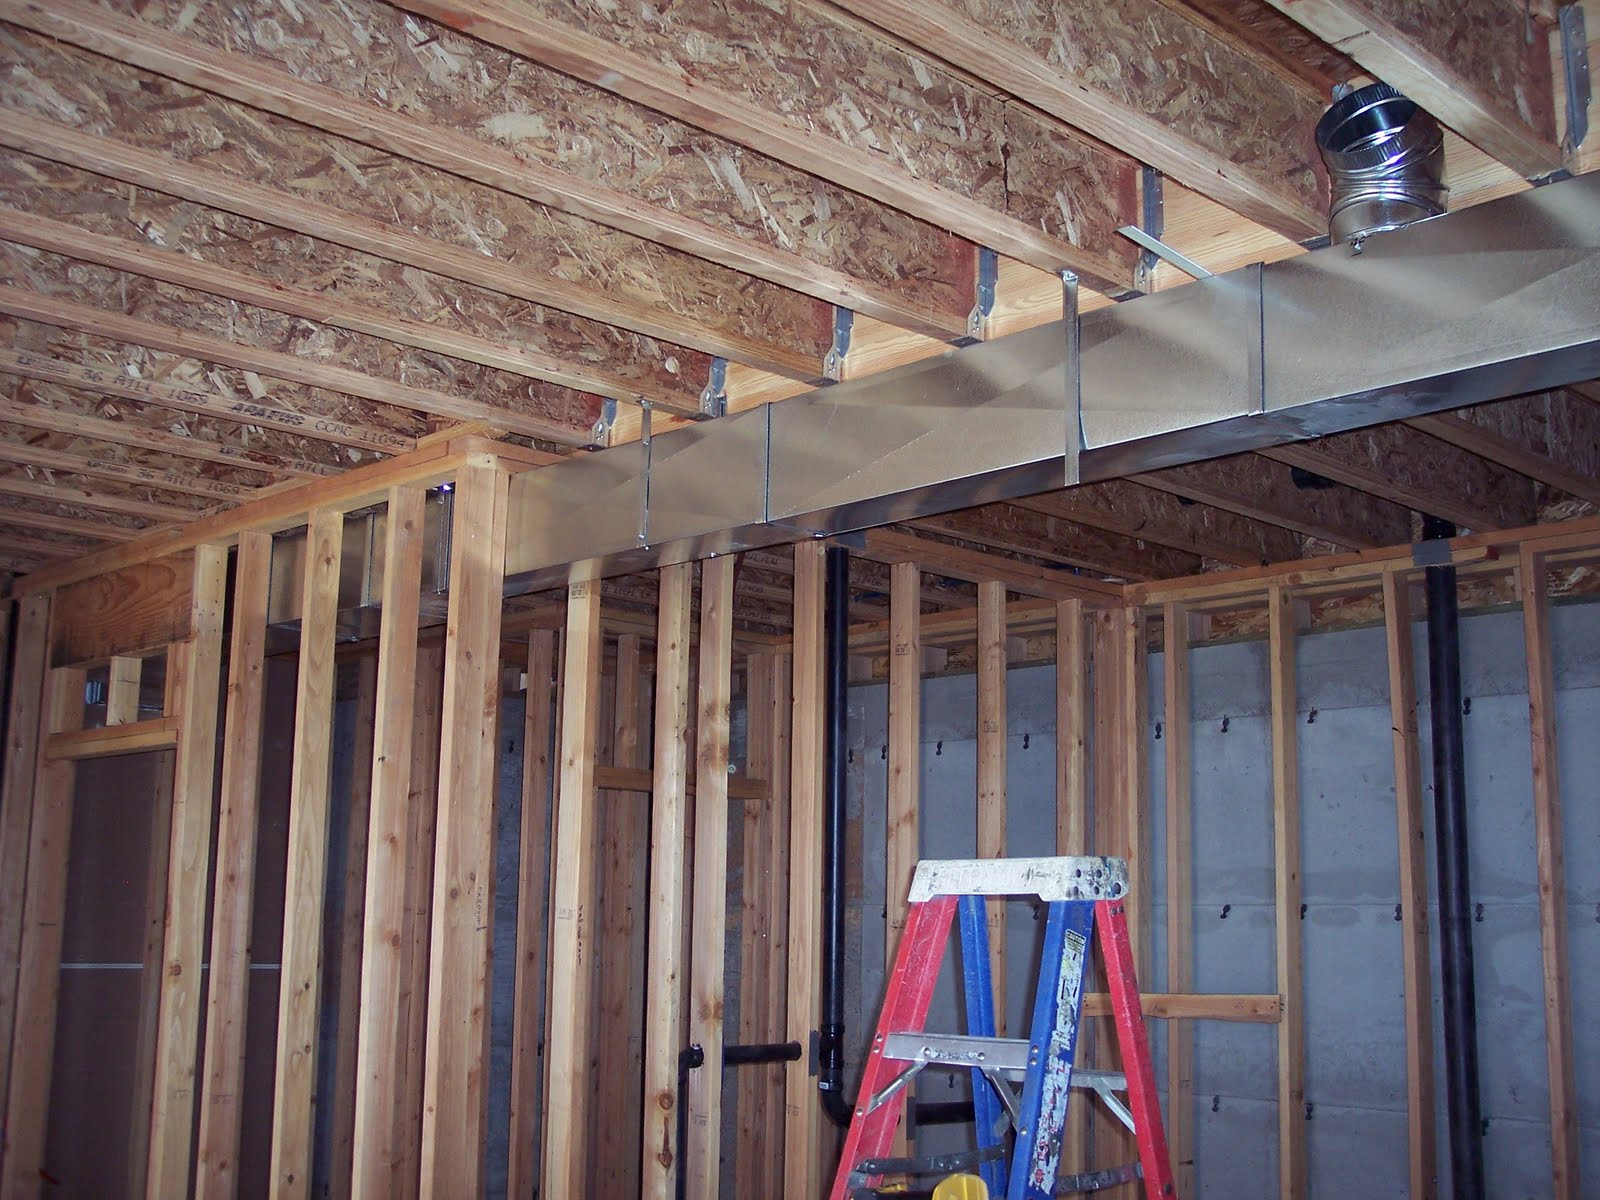 Building a Home: HVAC Ducting and Registers Being Installed #7D674E